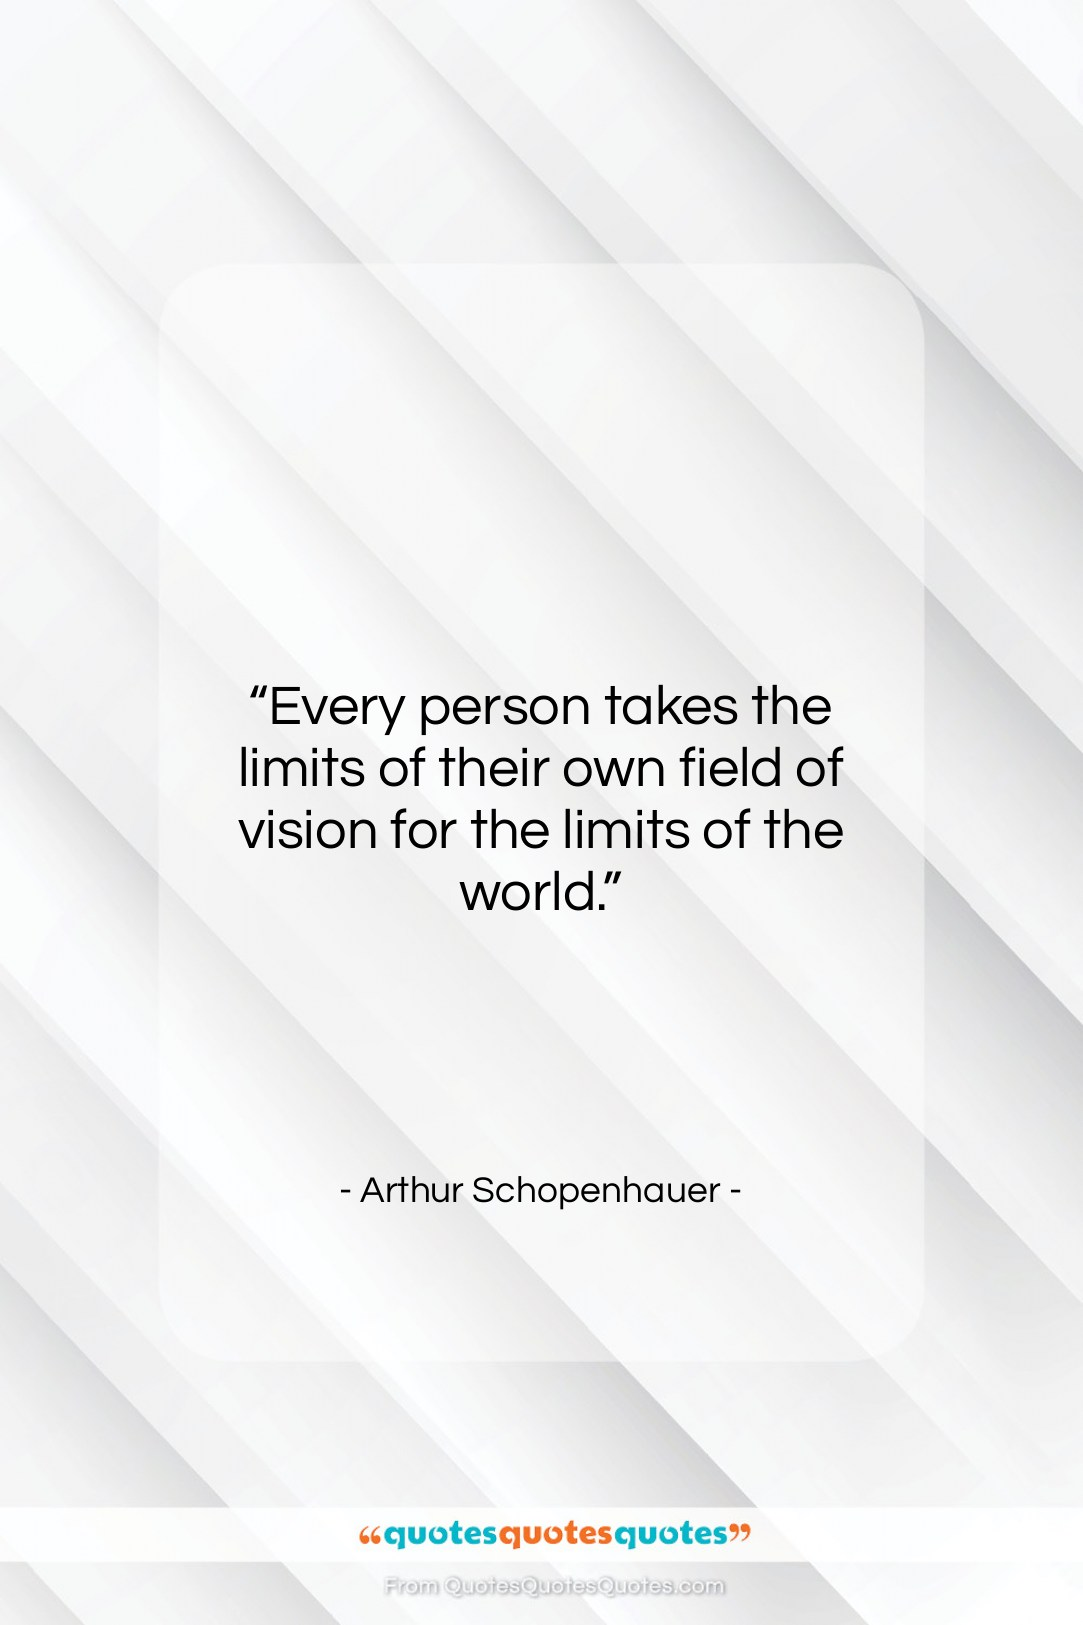 """Arthur Schopenhauer quote: """"Every person takes the limits of their…""""- at QuotesQuotesQuotes.com"""